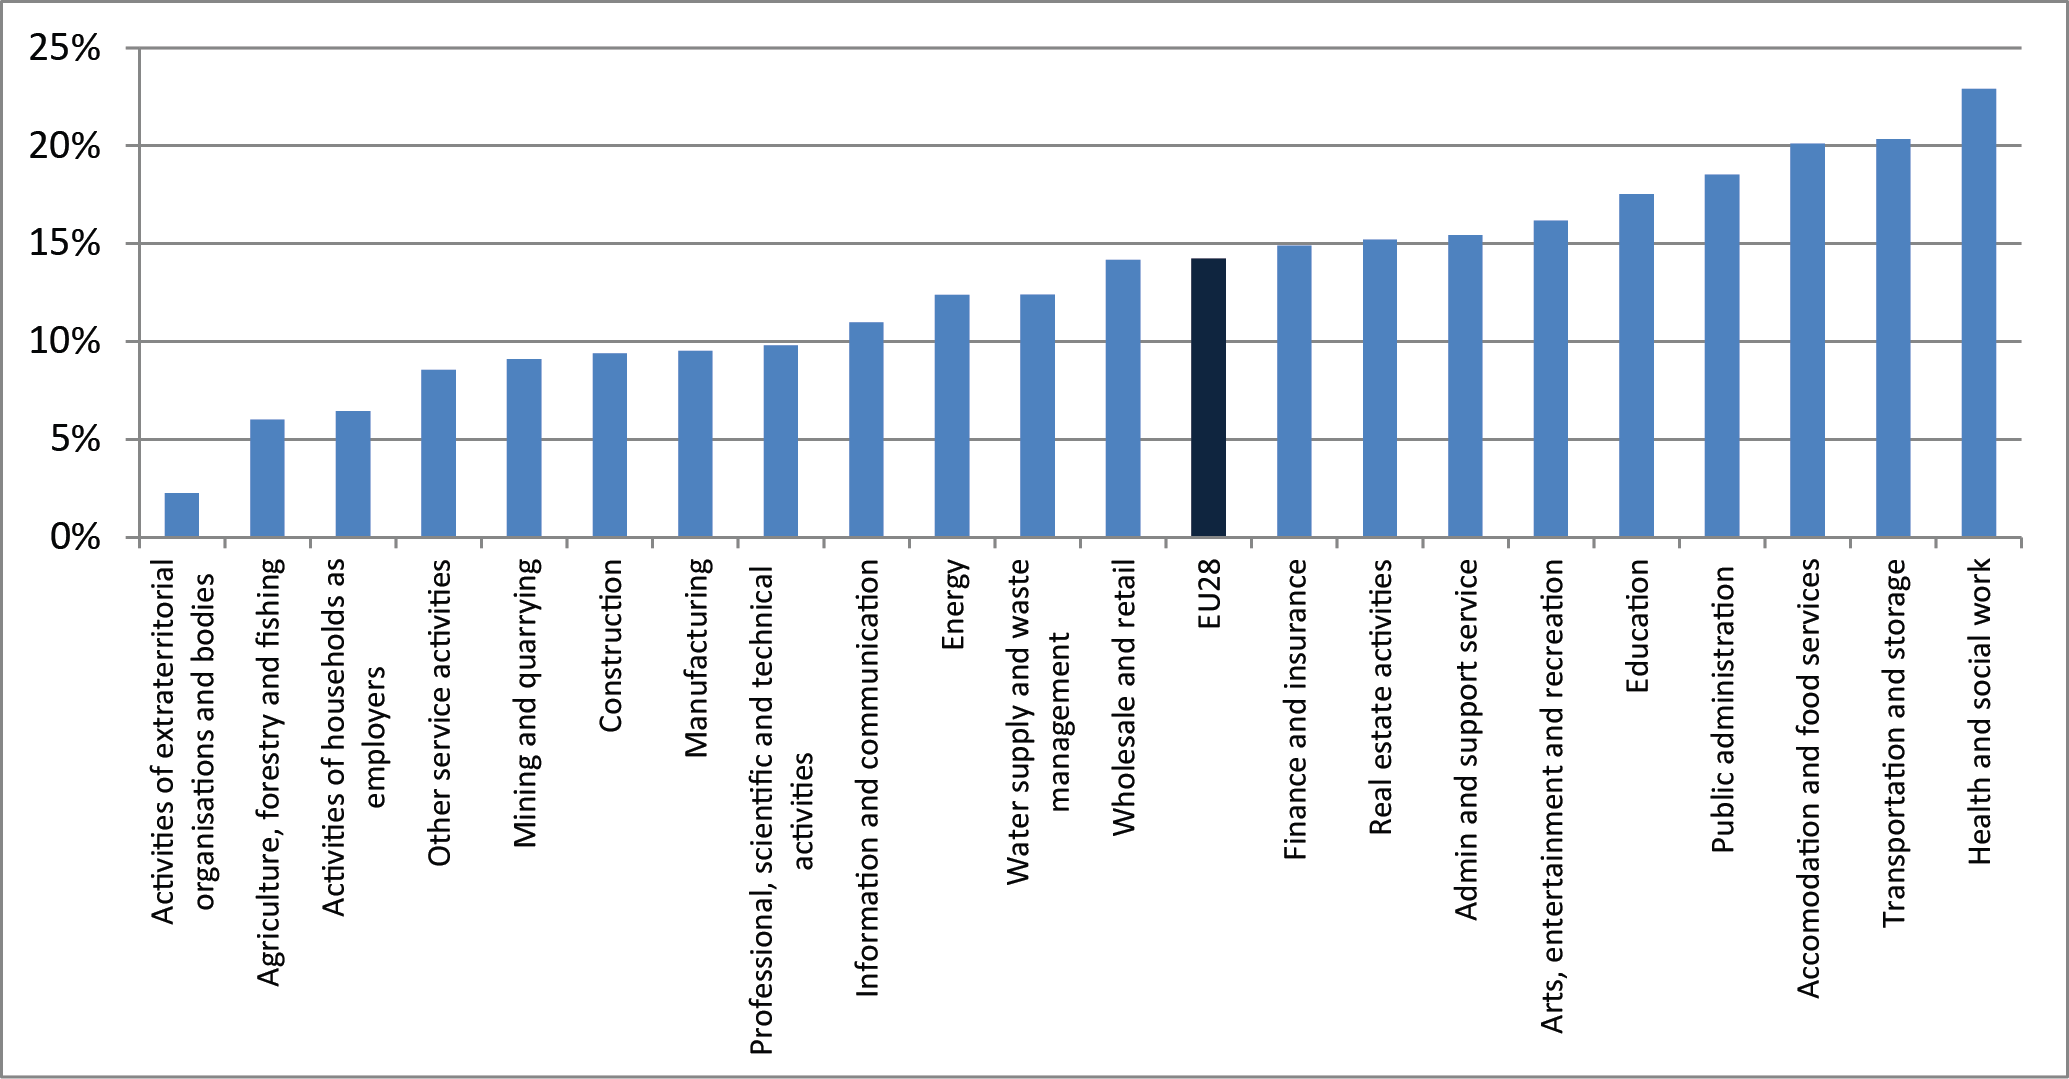 Figure 6: Proportion of people subjected to ASB, by sector (%)